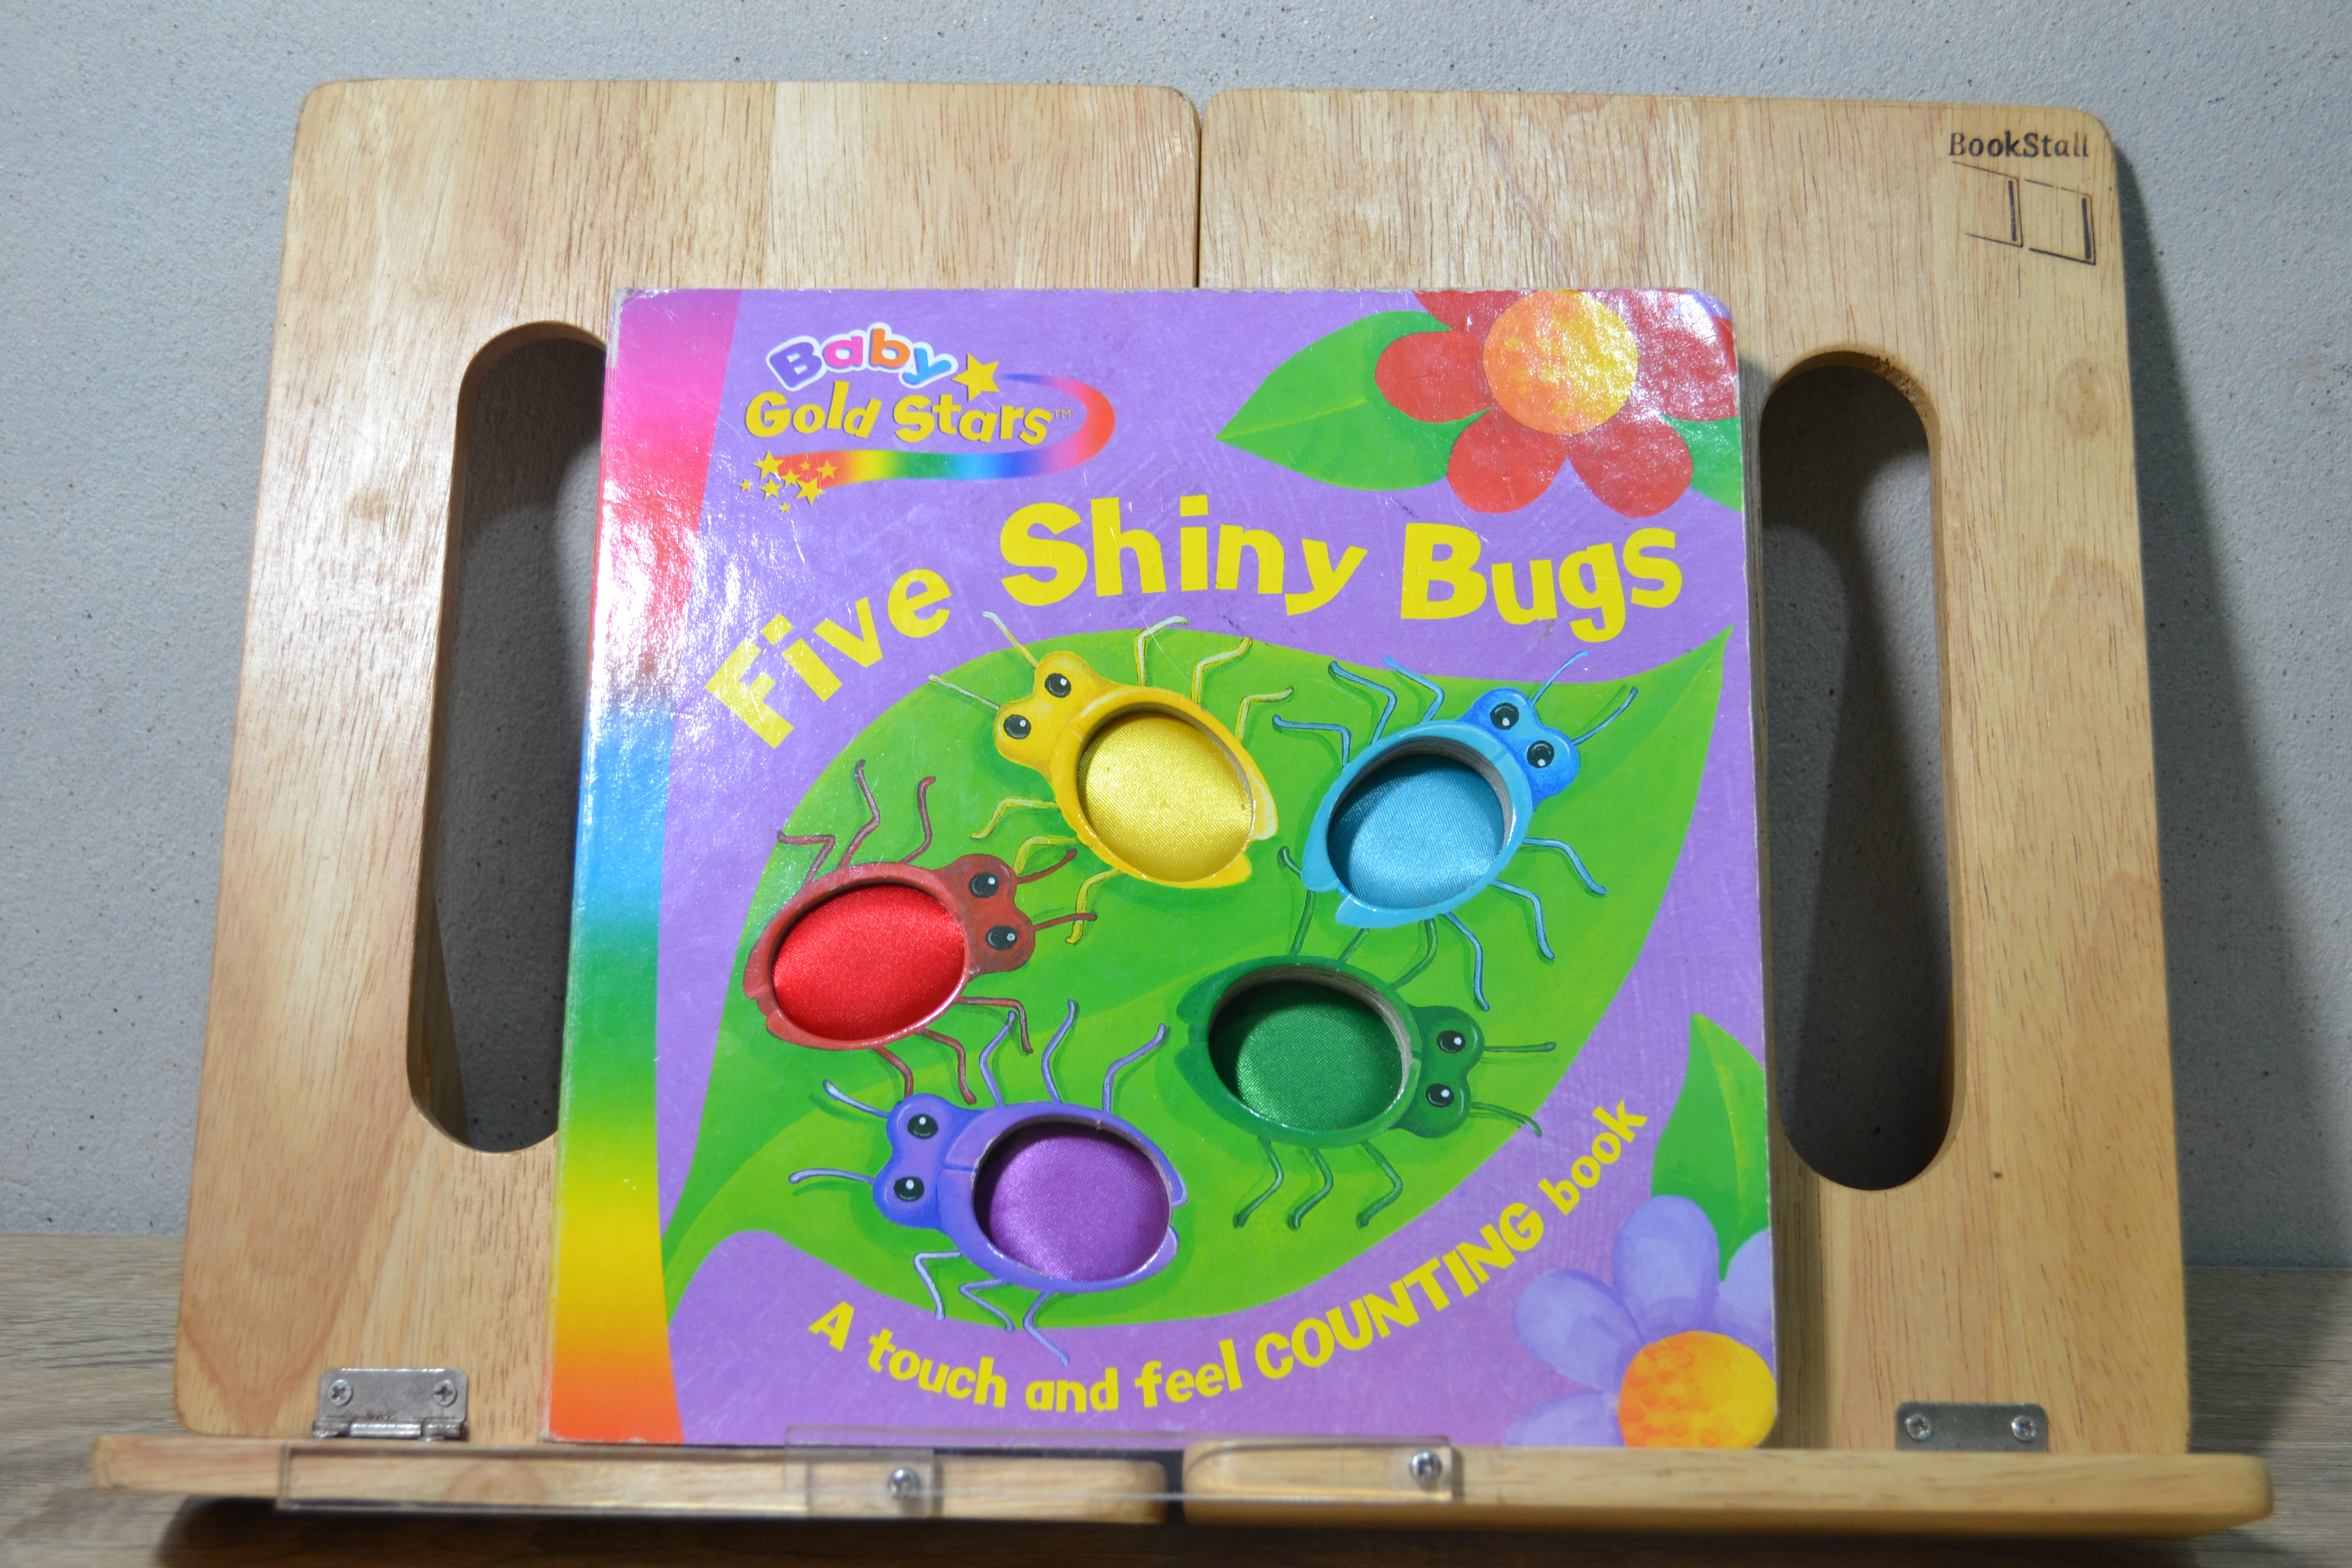 Five Shiby Bugs